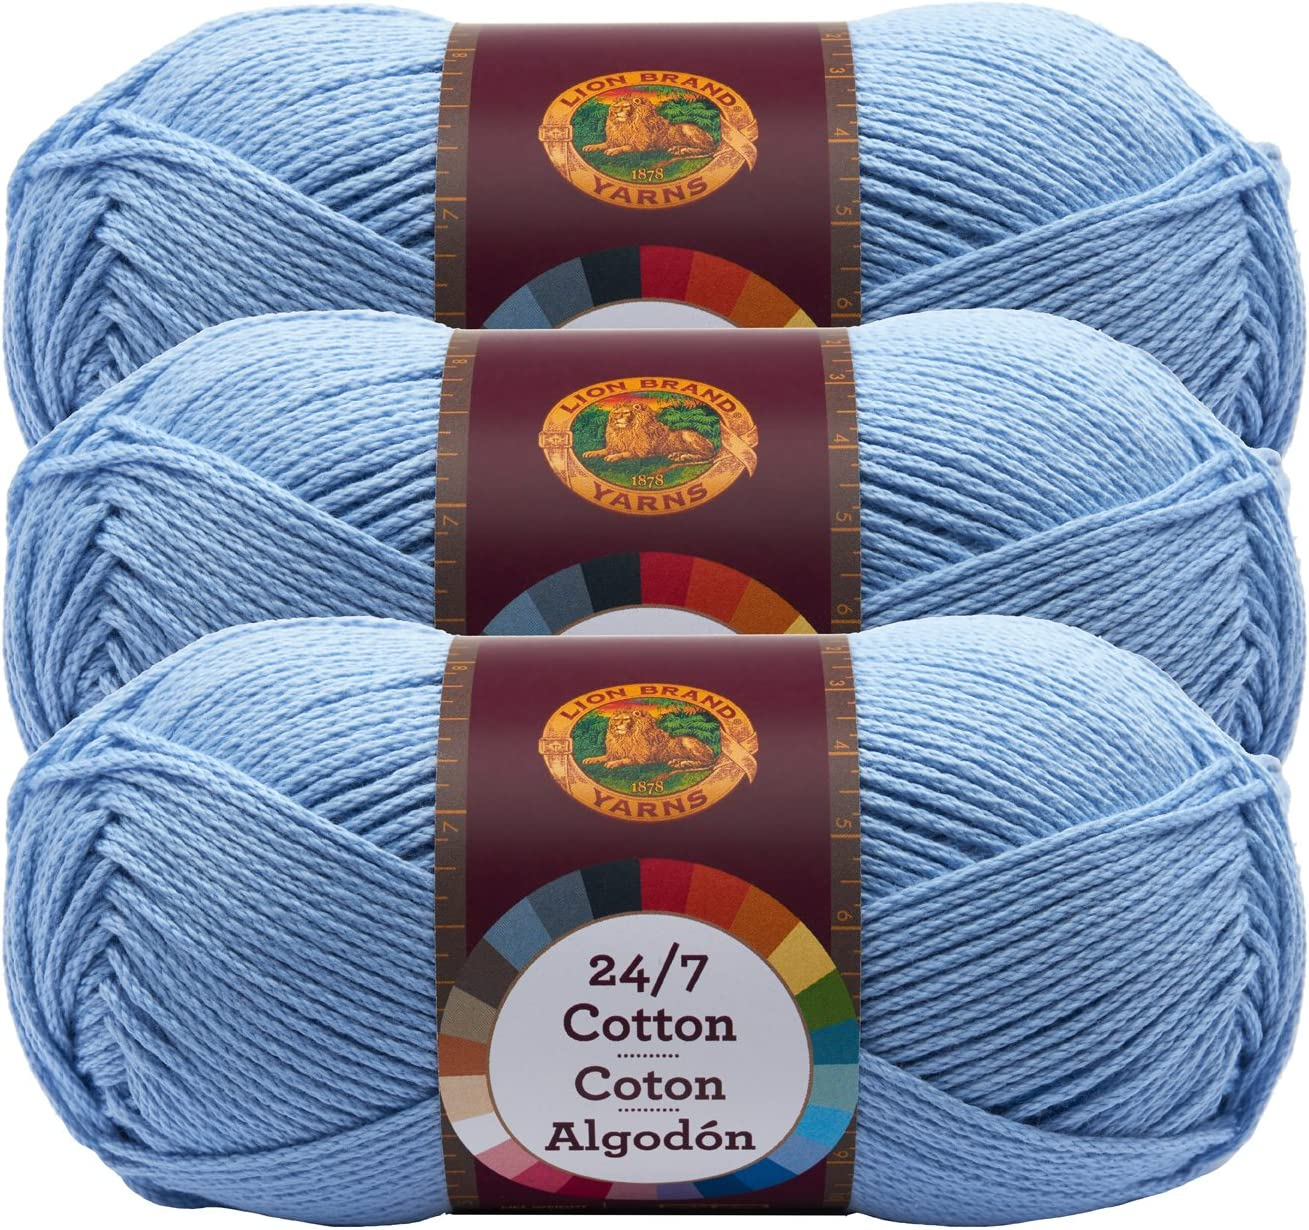 Pack of 3 skeins Lion Brand Yarn 761-150 24-7 Cotton Yarn Charcoal